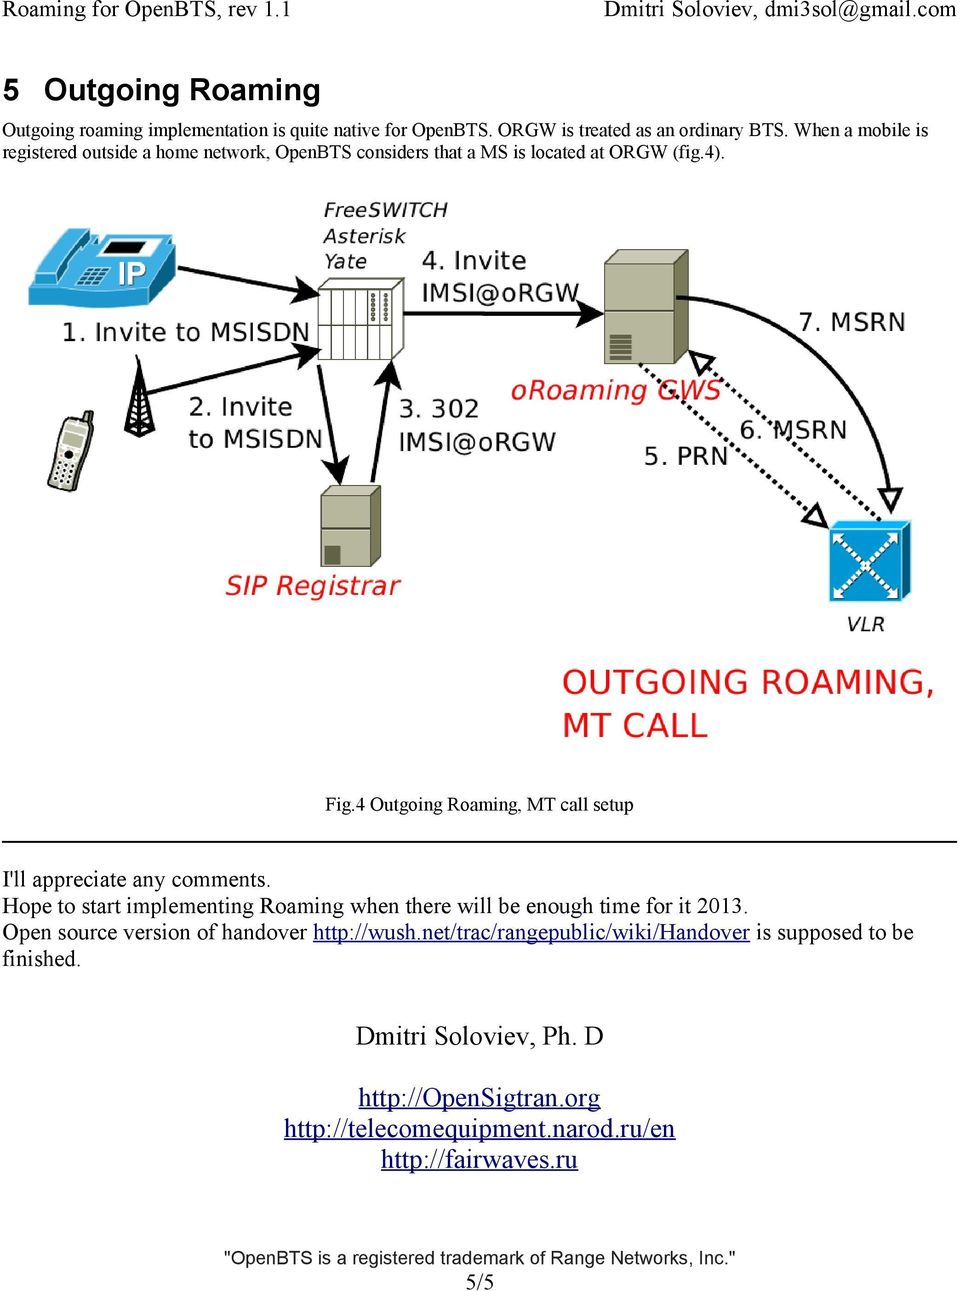 4 Outgoing Roaming, MT call setup I'll appreciate any comments. Hope to start implementing Roaming when there will be enough time for it 2013.